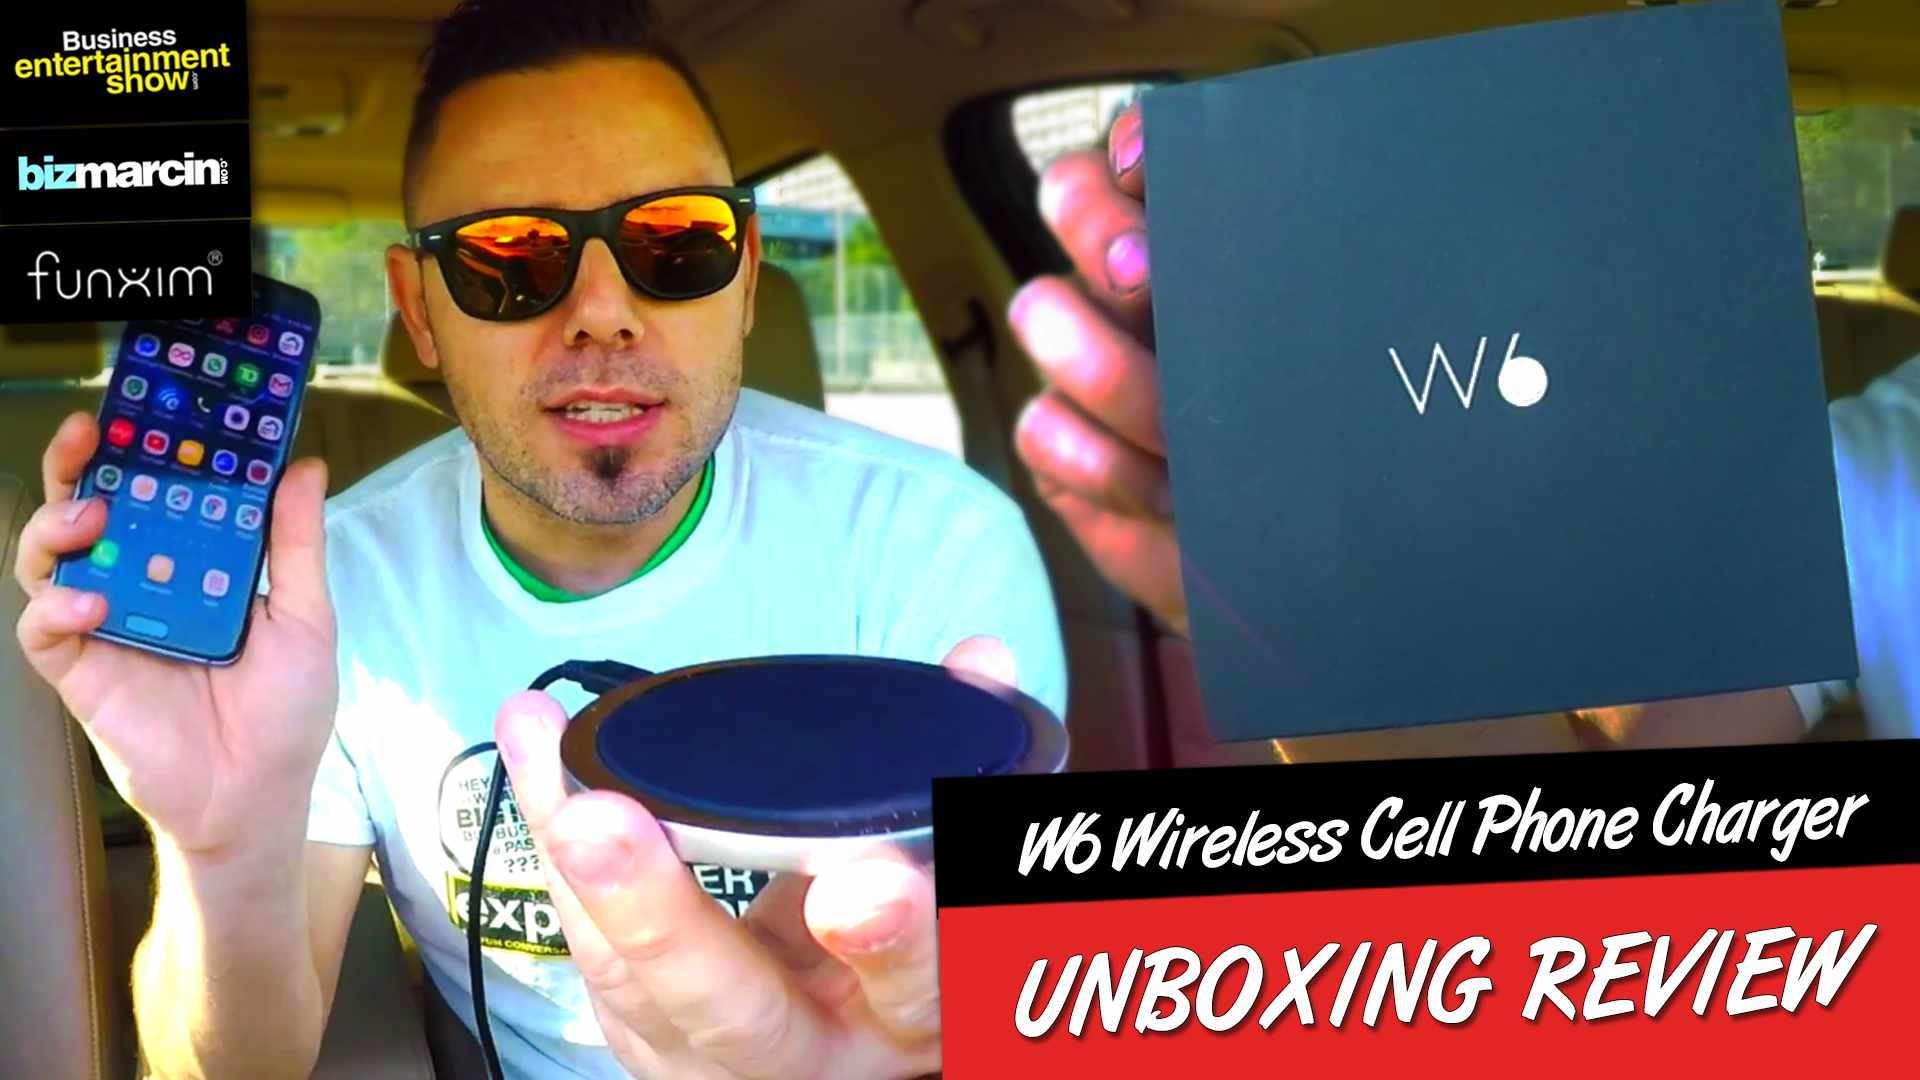 FUNXIM W6 Wireless Cell Phone Charger UNBOXING Review (Scott Barker EP Trailer)